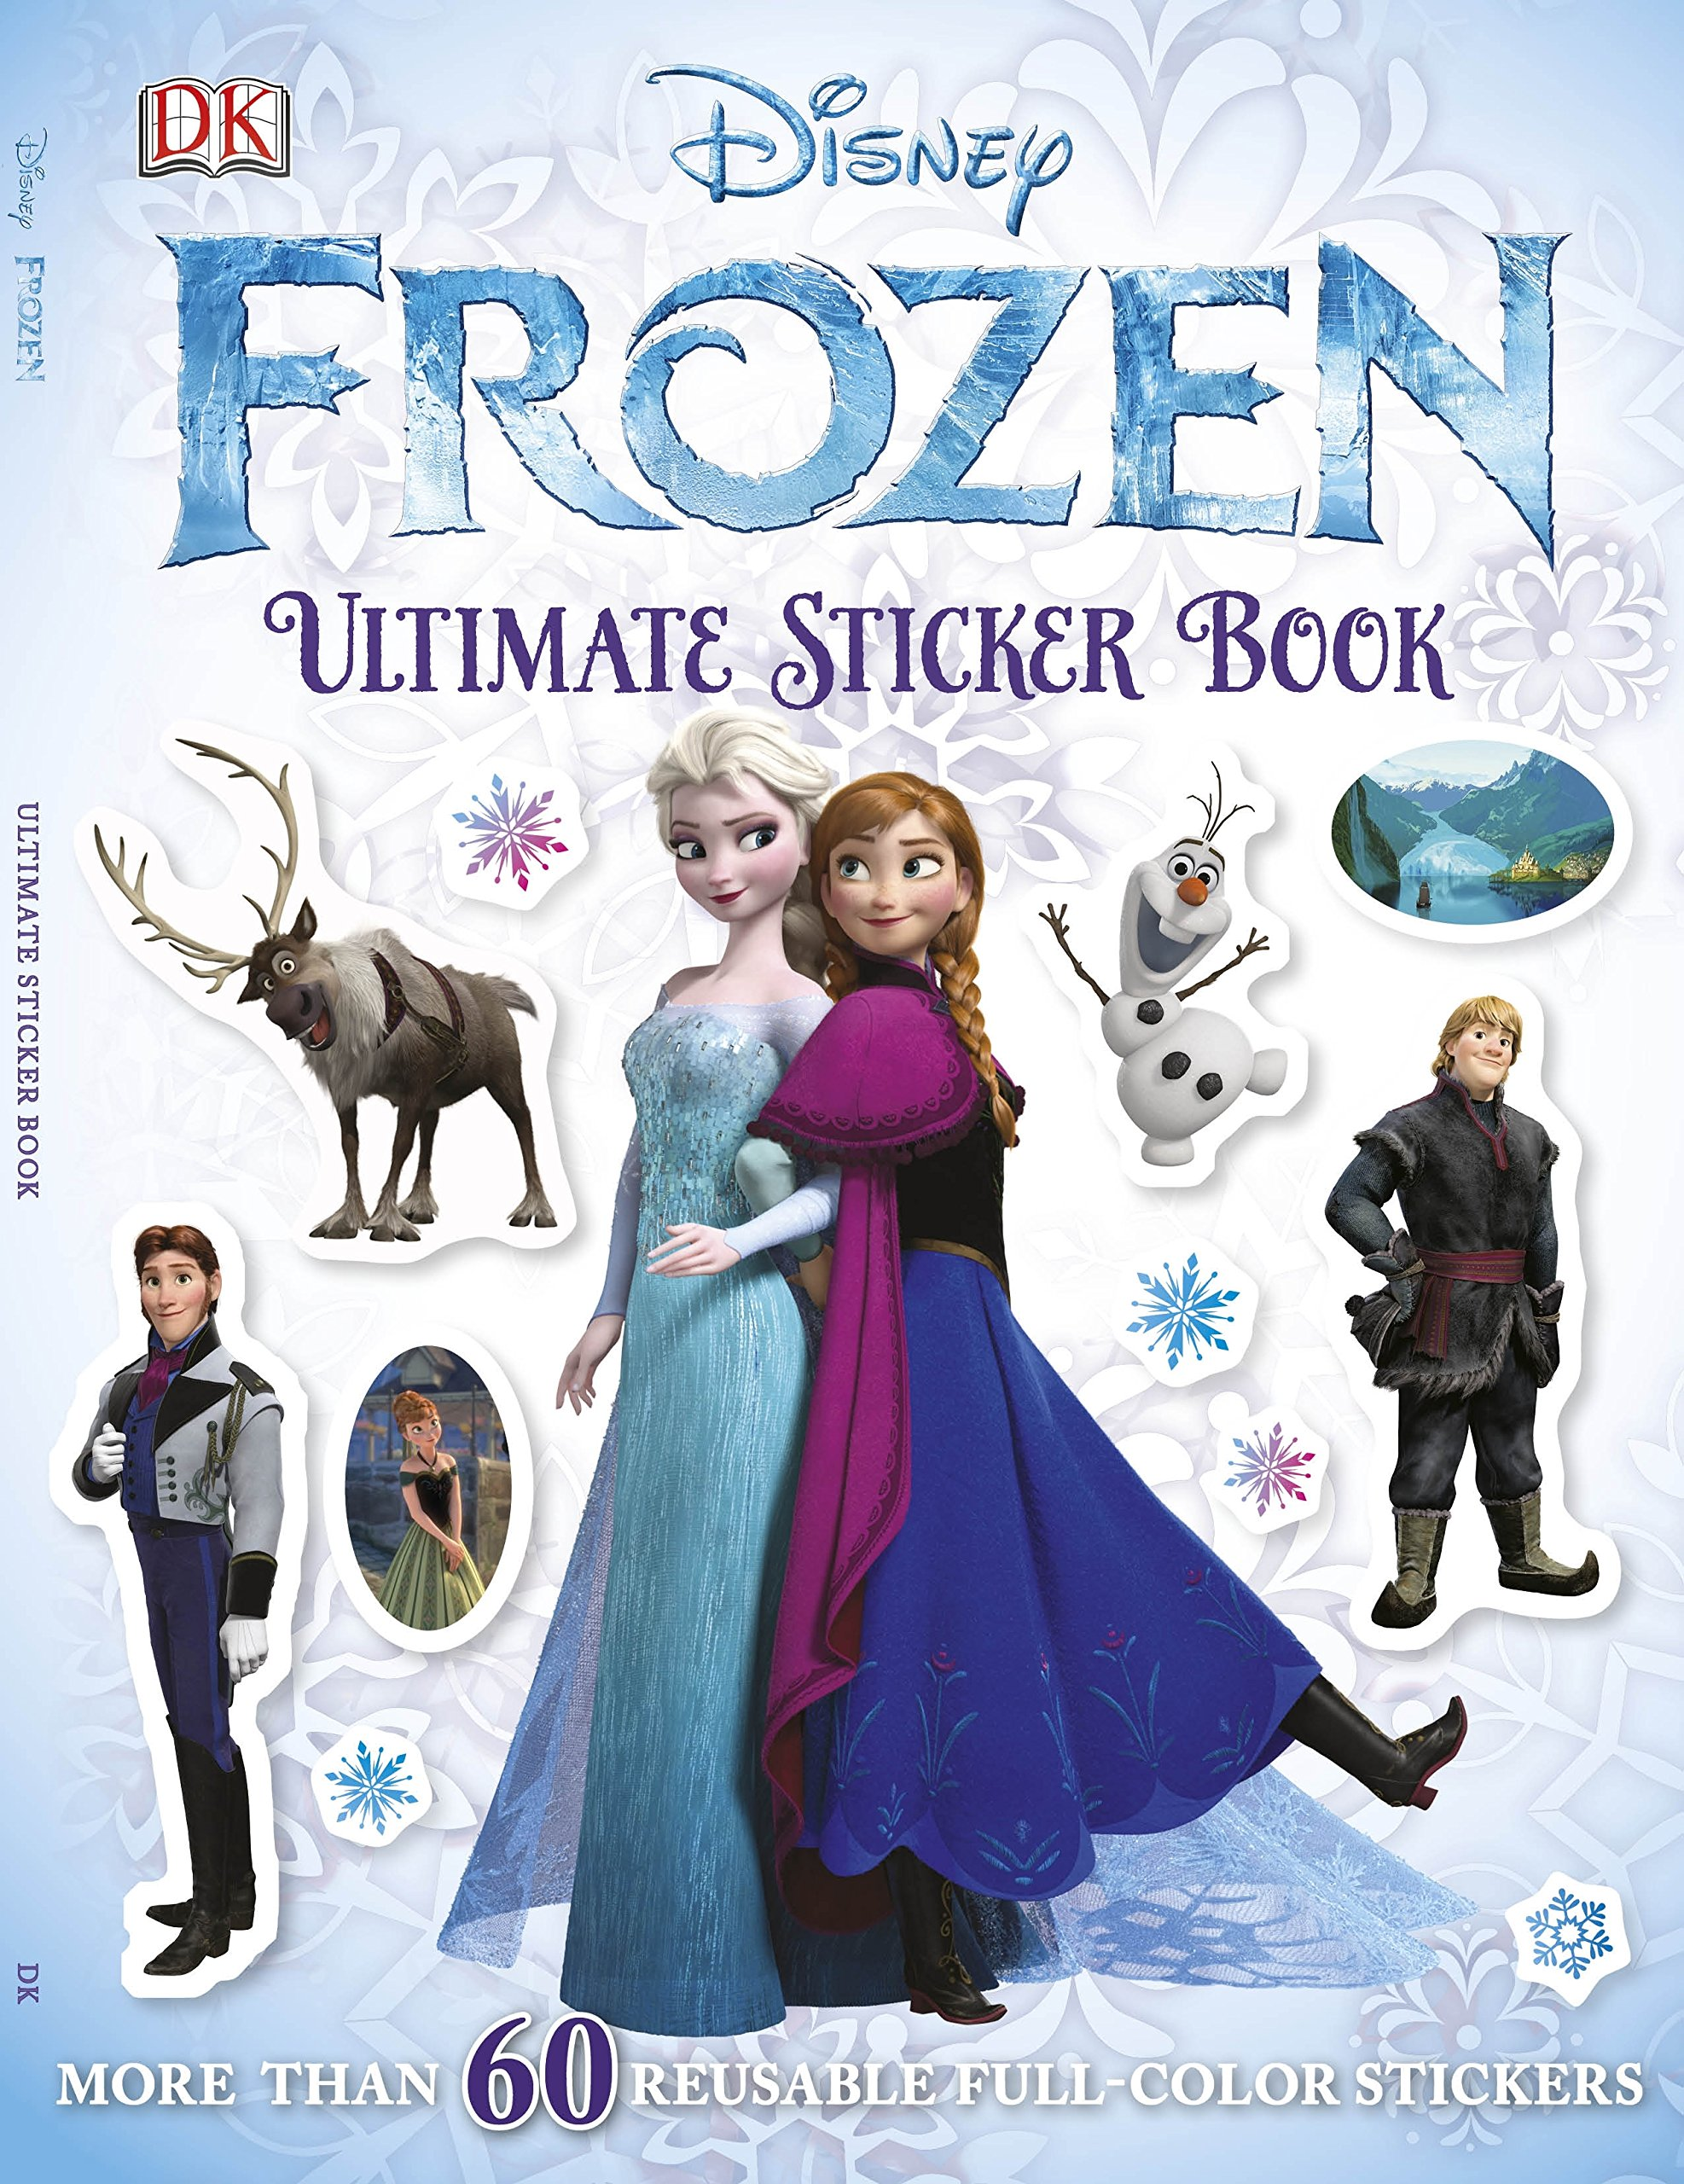 Ultimate Sticker Book Frozen Books DK Publishing 9781465414052 Amazon